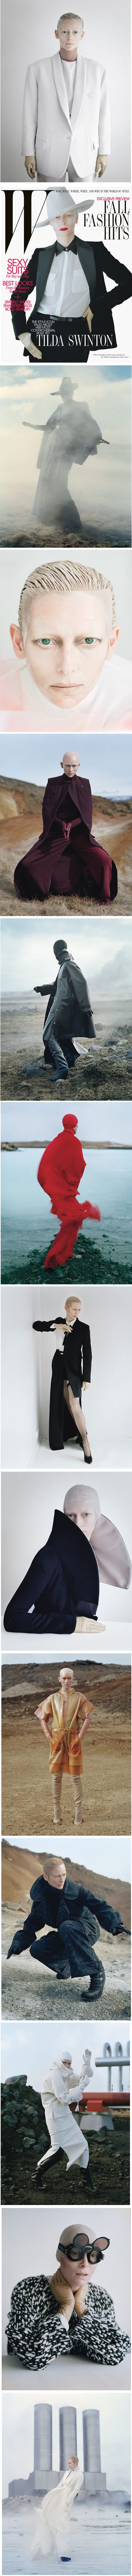 tilda swinton tim walker